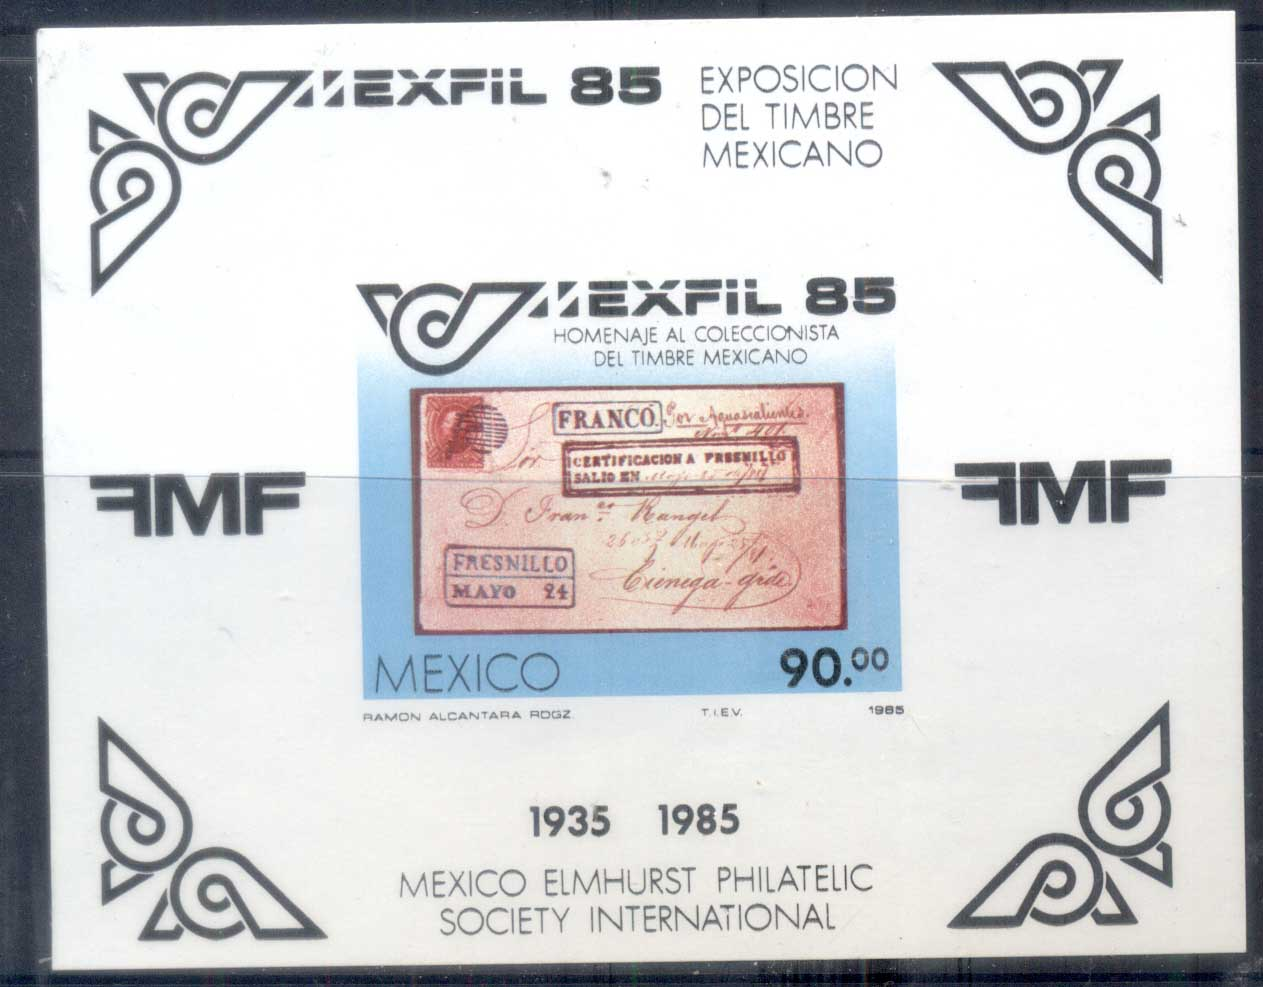 Mexico 1985 MEXPHIL '85 Stamp Ex MS MUH